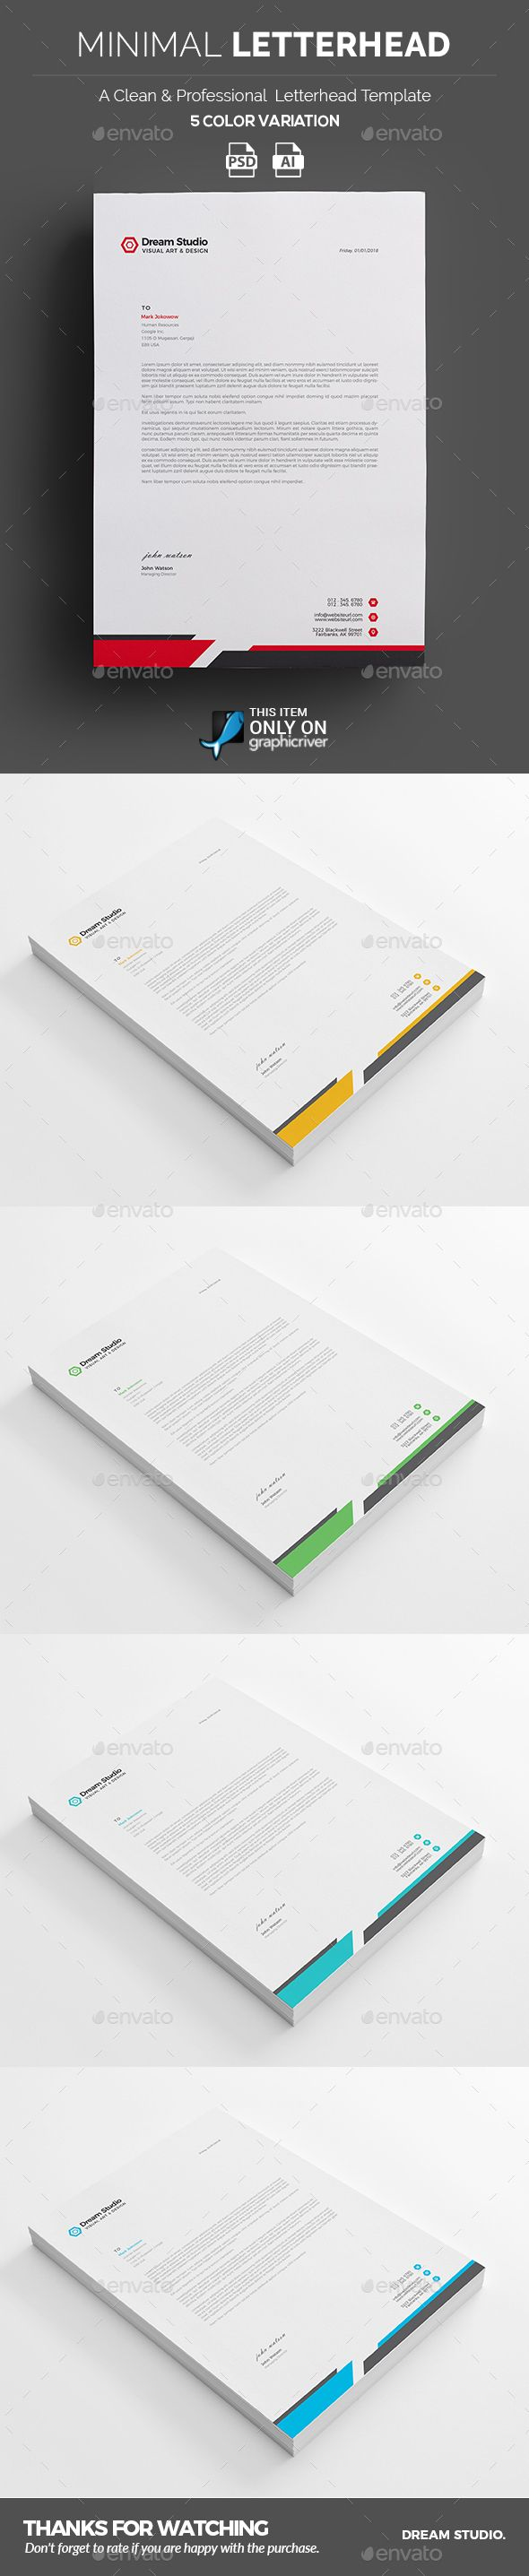 Professional Letterhead Templates Pleasing 232 Best Letterhead Design Images On Pinterest  Print Templates .